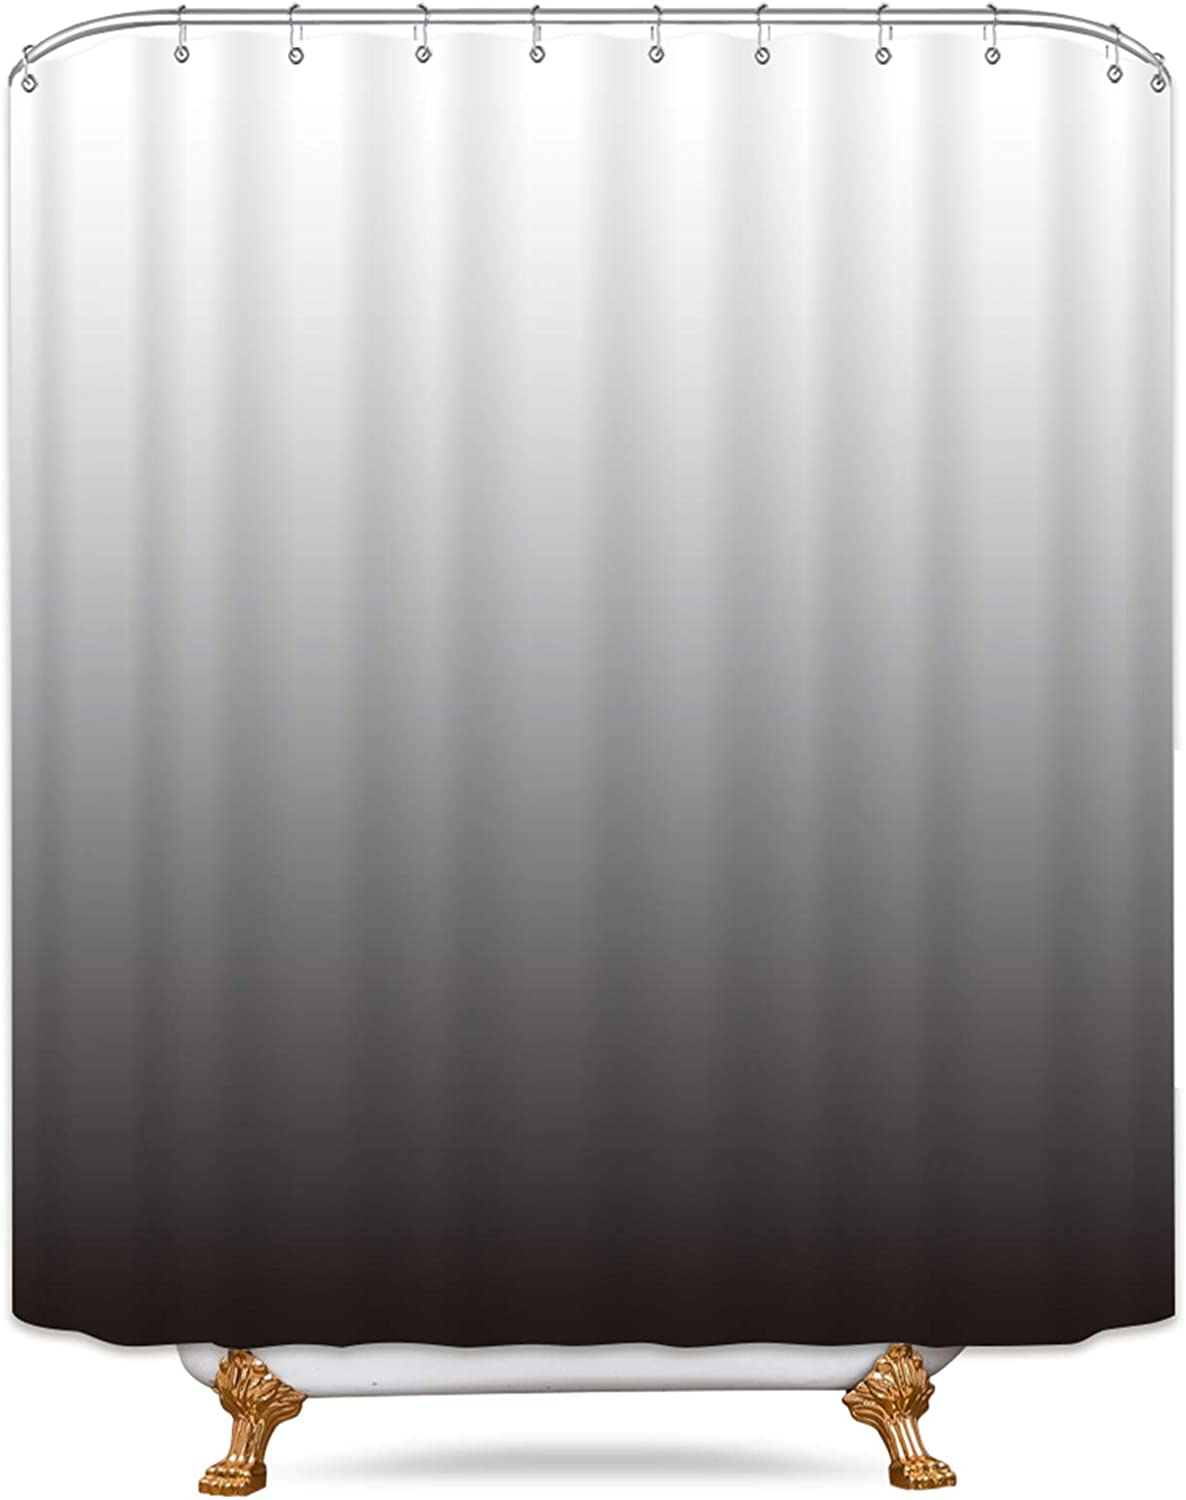 """Riyidecor Extra Long Ombre Gray Shower Curtain 72"""" W x 84"""" H Free Metal Hooks 12-Pack Heavy Duty Simple Modern Decor Fabric Set Polyester Waterproof Bathroom"""